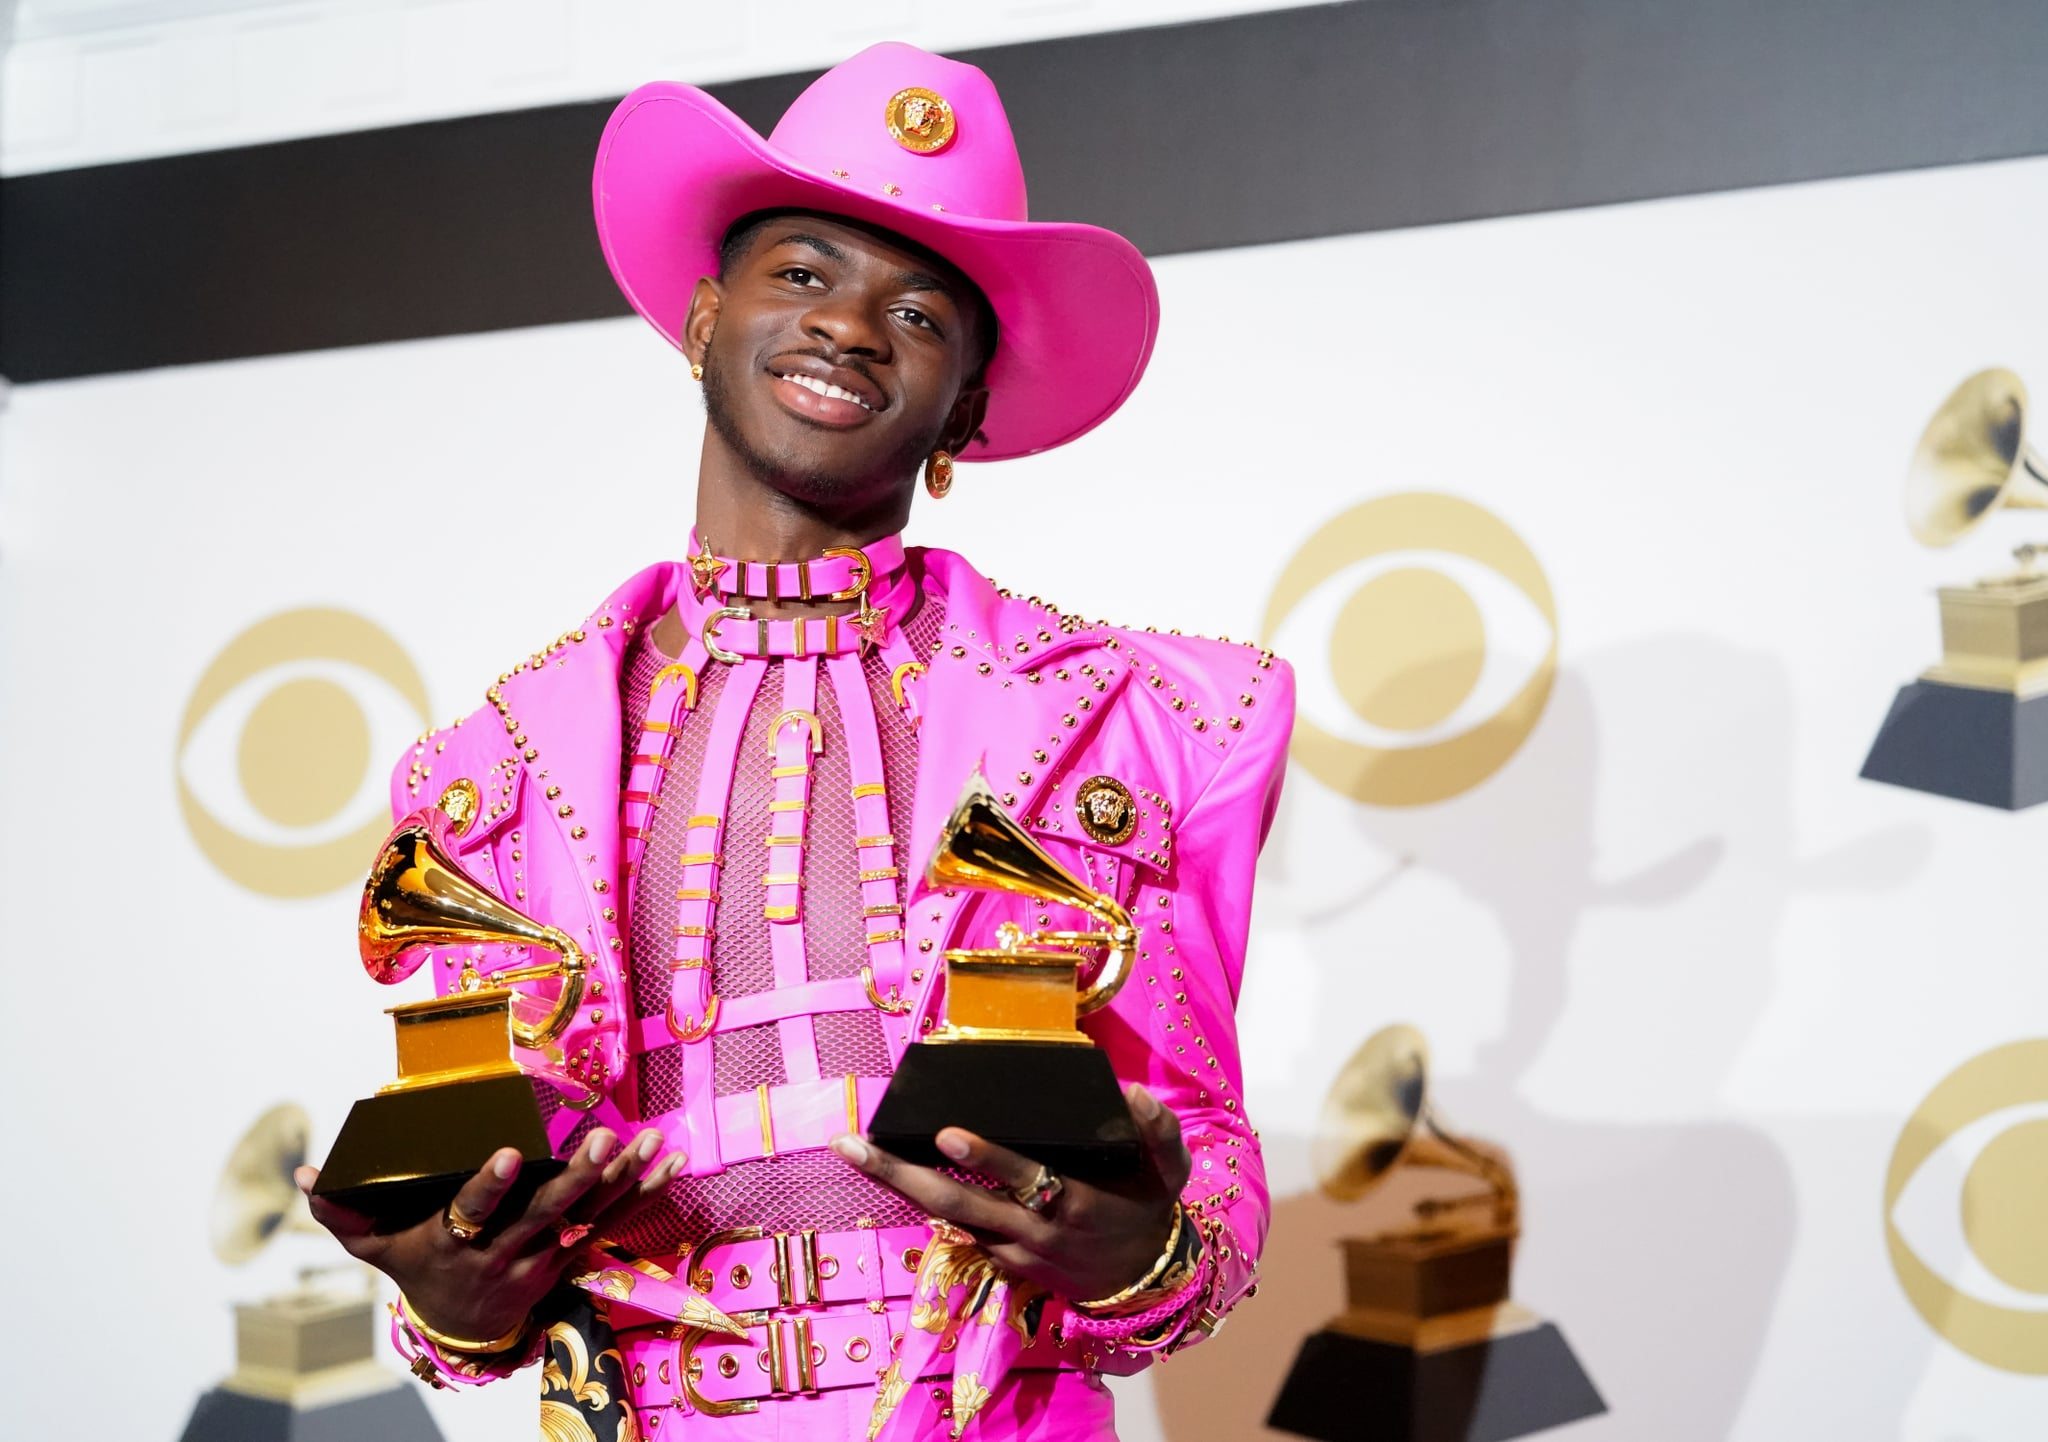 LOS ANGELES, CALIFORNIA - JANUARY 26: Lil Nas X poses in the press room with the awards for Best Music Video and Best Pop Duo/Group Performance during the 62nd Annual GRAMMY Awards at Staples Center on January 26, 2020 in Los Angeles, California. (Photo by Rachel Luna/FilmMagic)